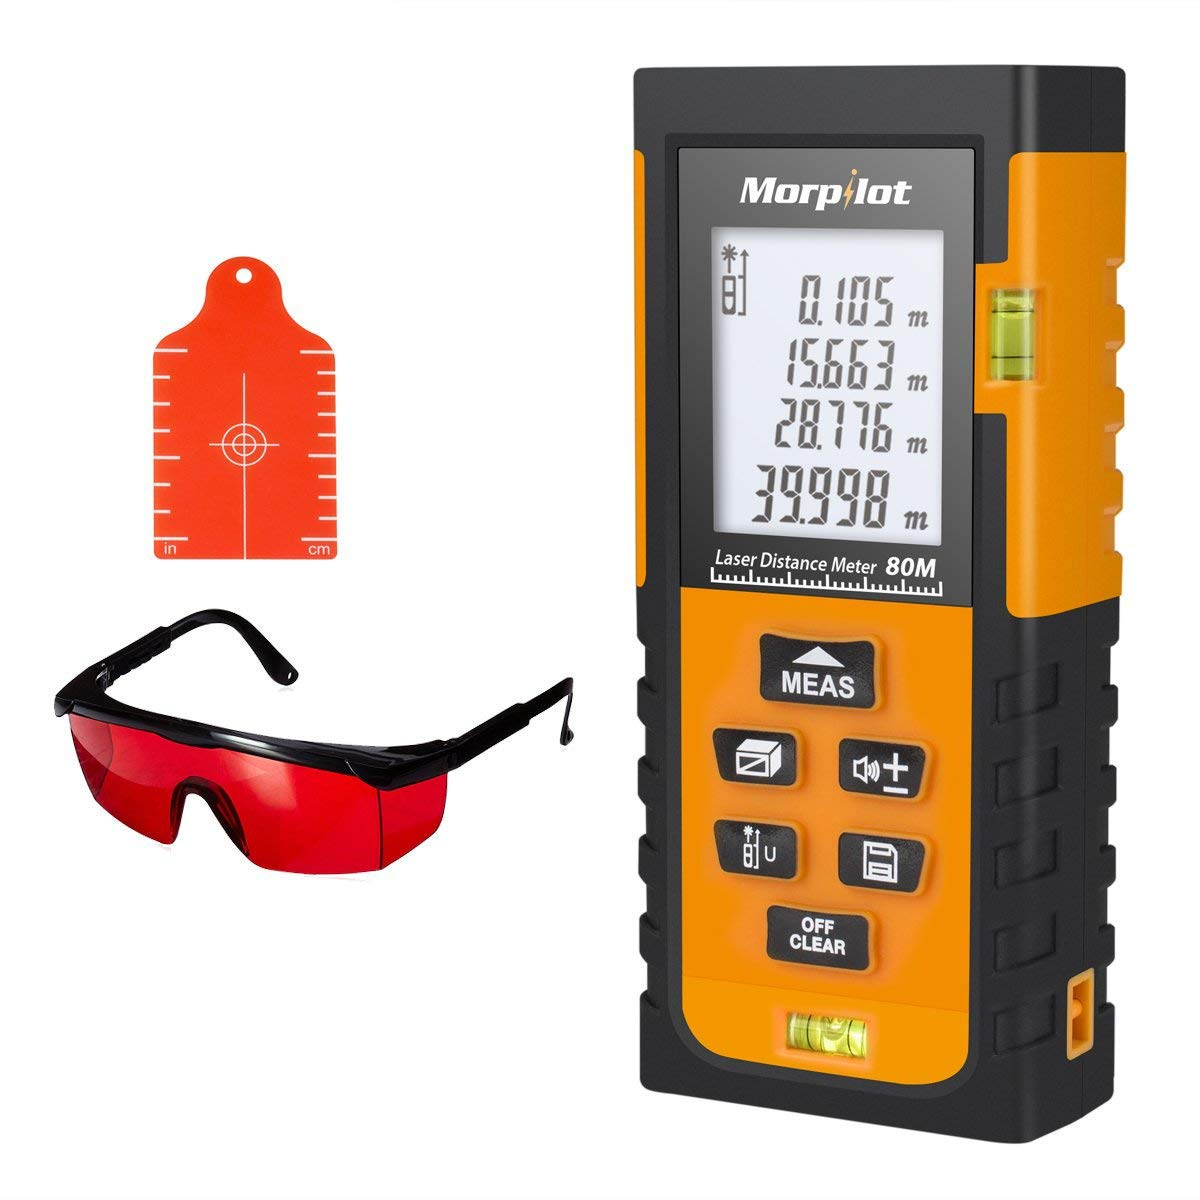 262ft Laser Measure - Morpilot Laser Tape Measure with Target Plate & Enhancing Glasses, Laser Measuring Device with Pythagorean Mode, Measure Distance, Area, Volume Calculation (262FT)